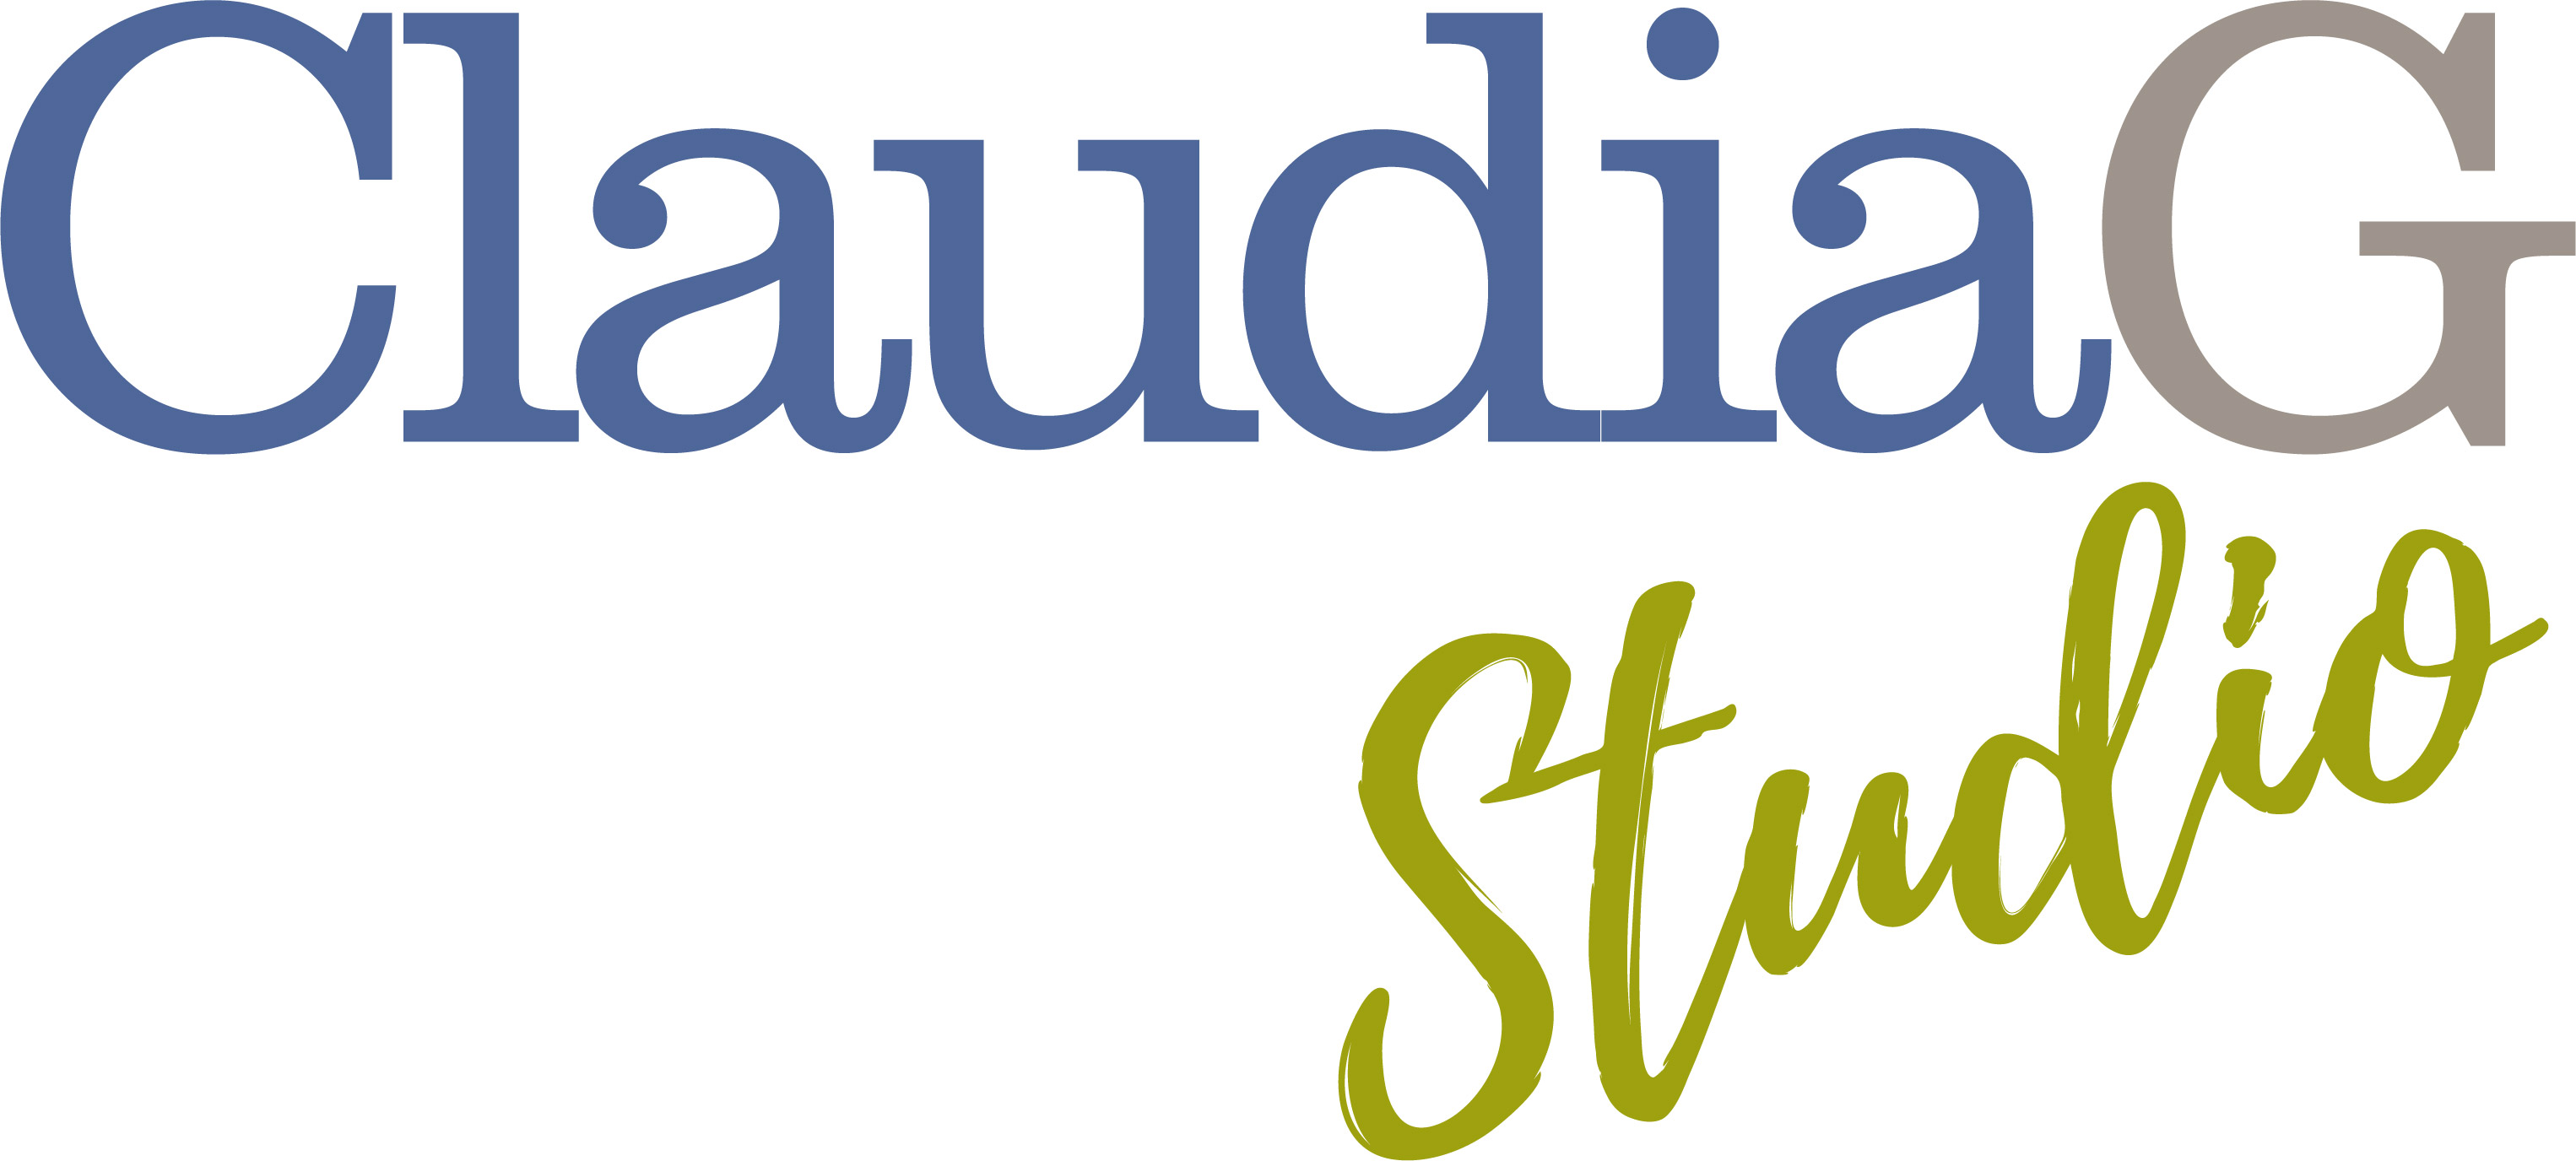 ClaudiaG Studio